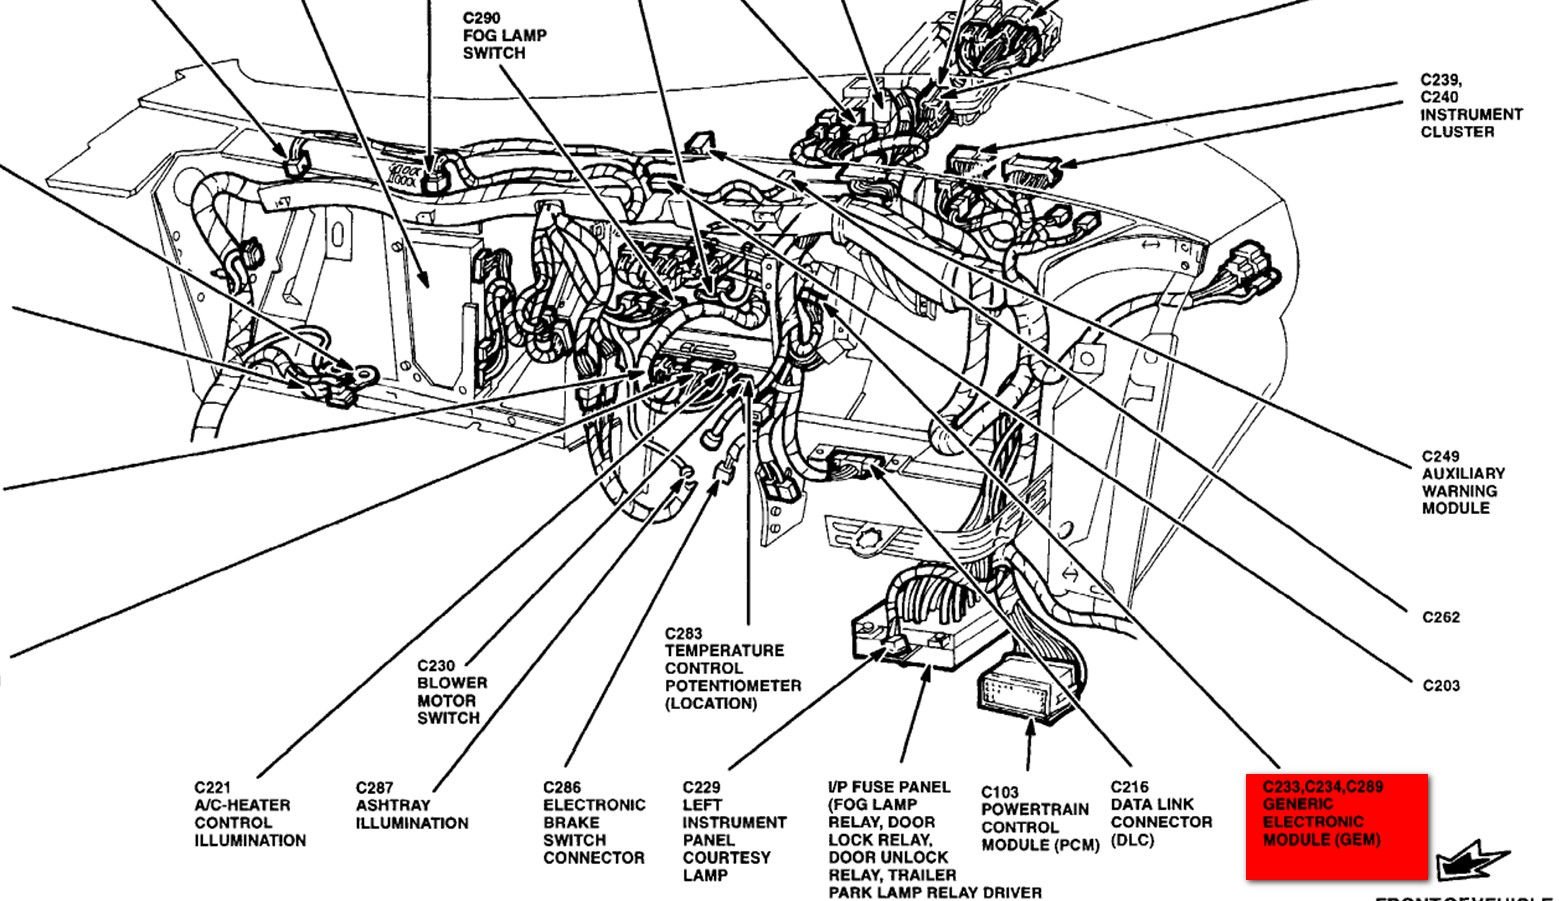 98 ford windstar wiring diagrams product analysis example staple, Wiring diagram